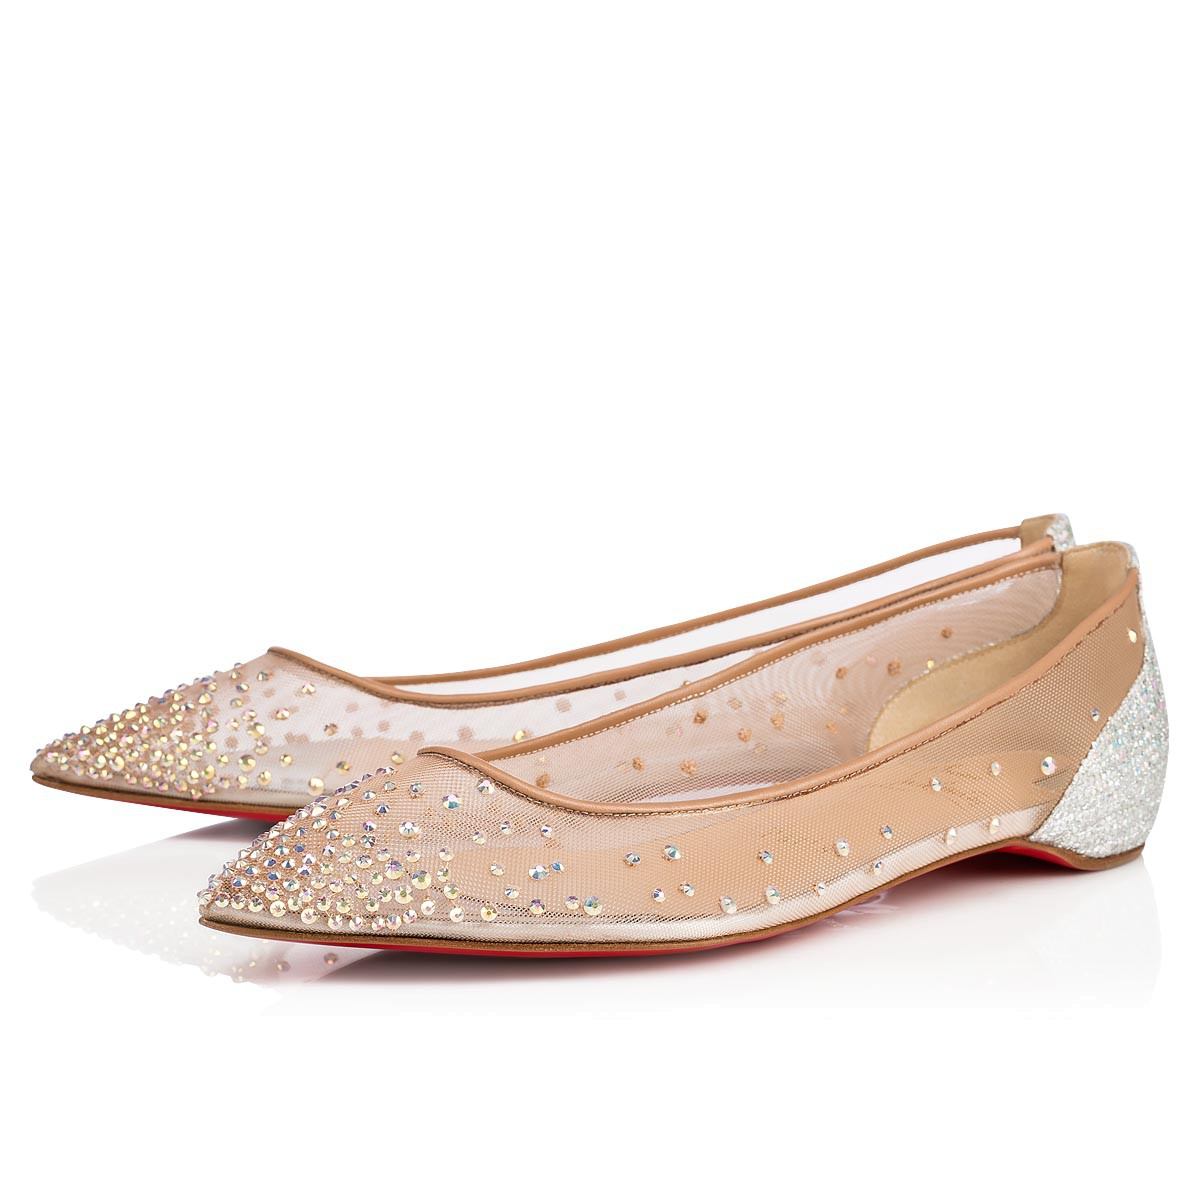 low priced 72da0 aaabb Follies Strass VERSION CRYSTAL Strass - Women Shoes - Christian Louboutin